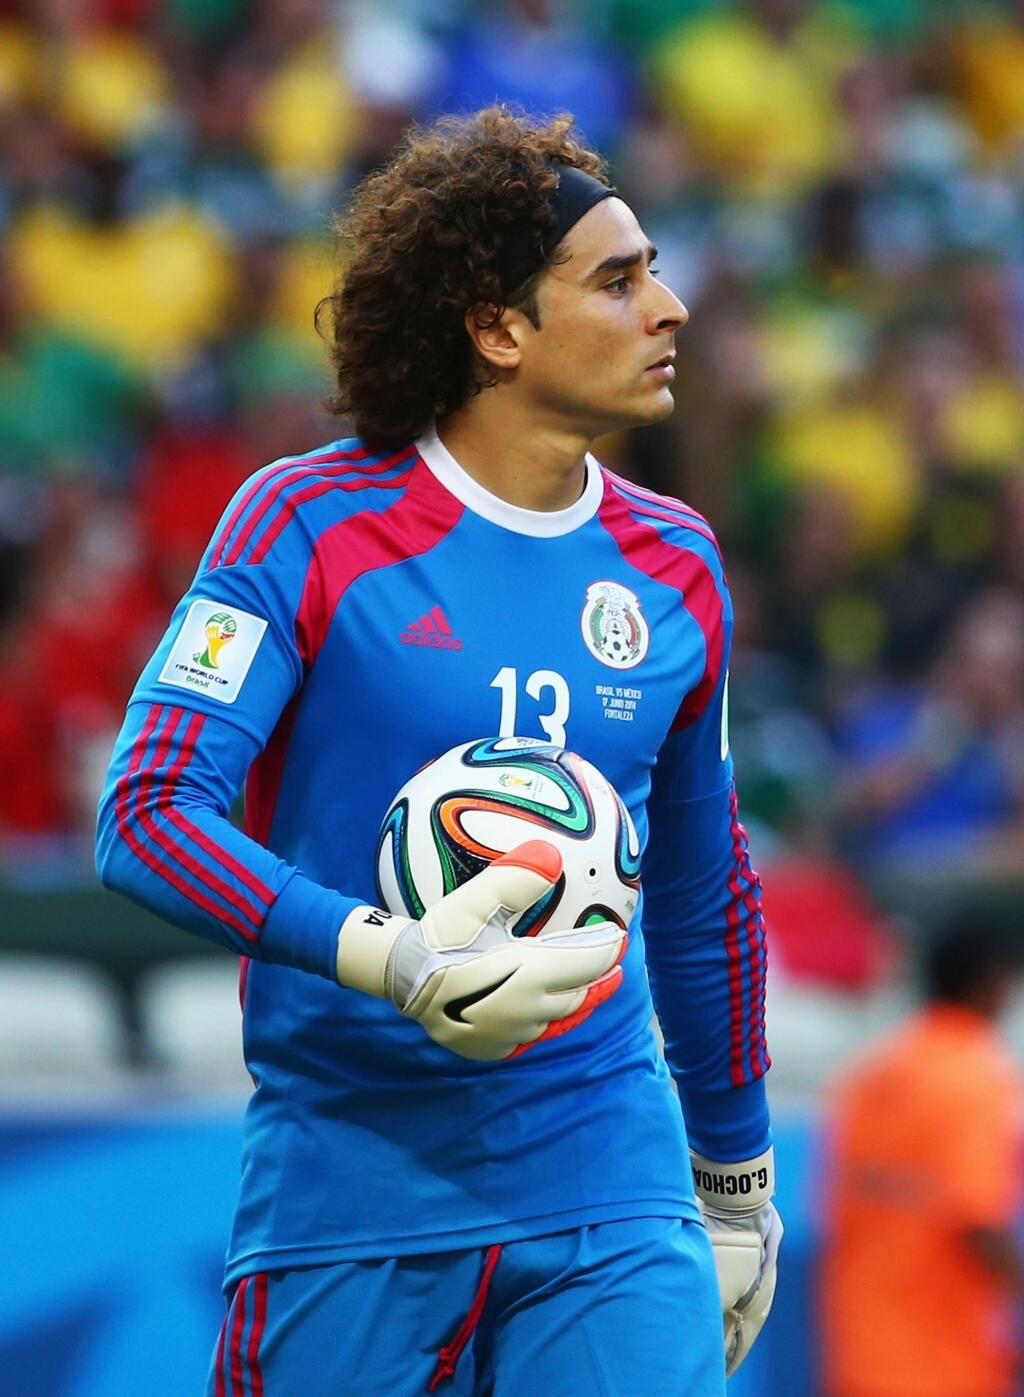 592fc565aa0 Guillermo Ochoa has to be the most underrated futbol player EVER ...